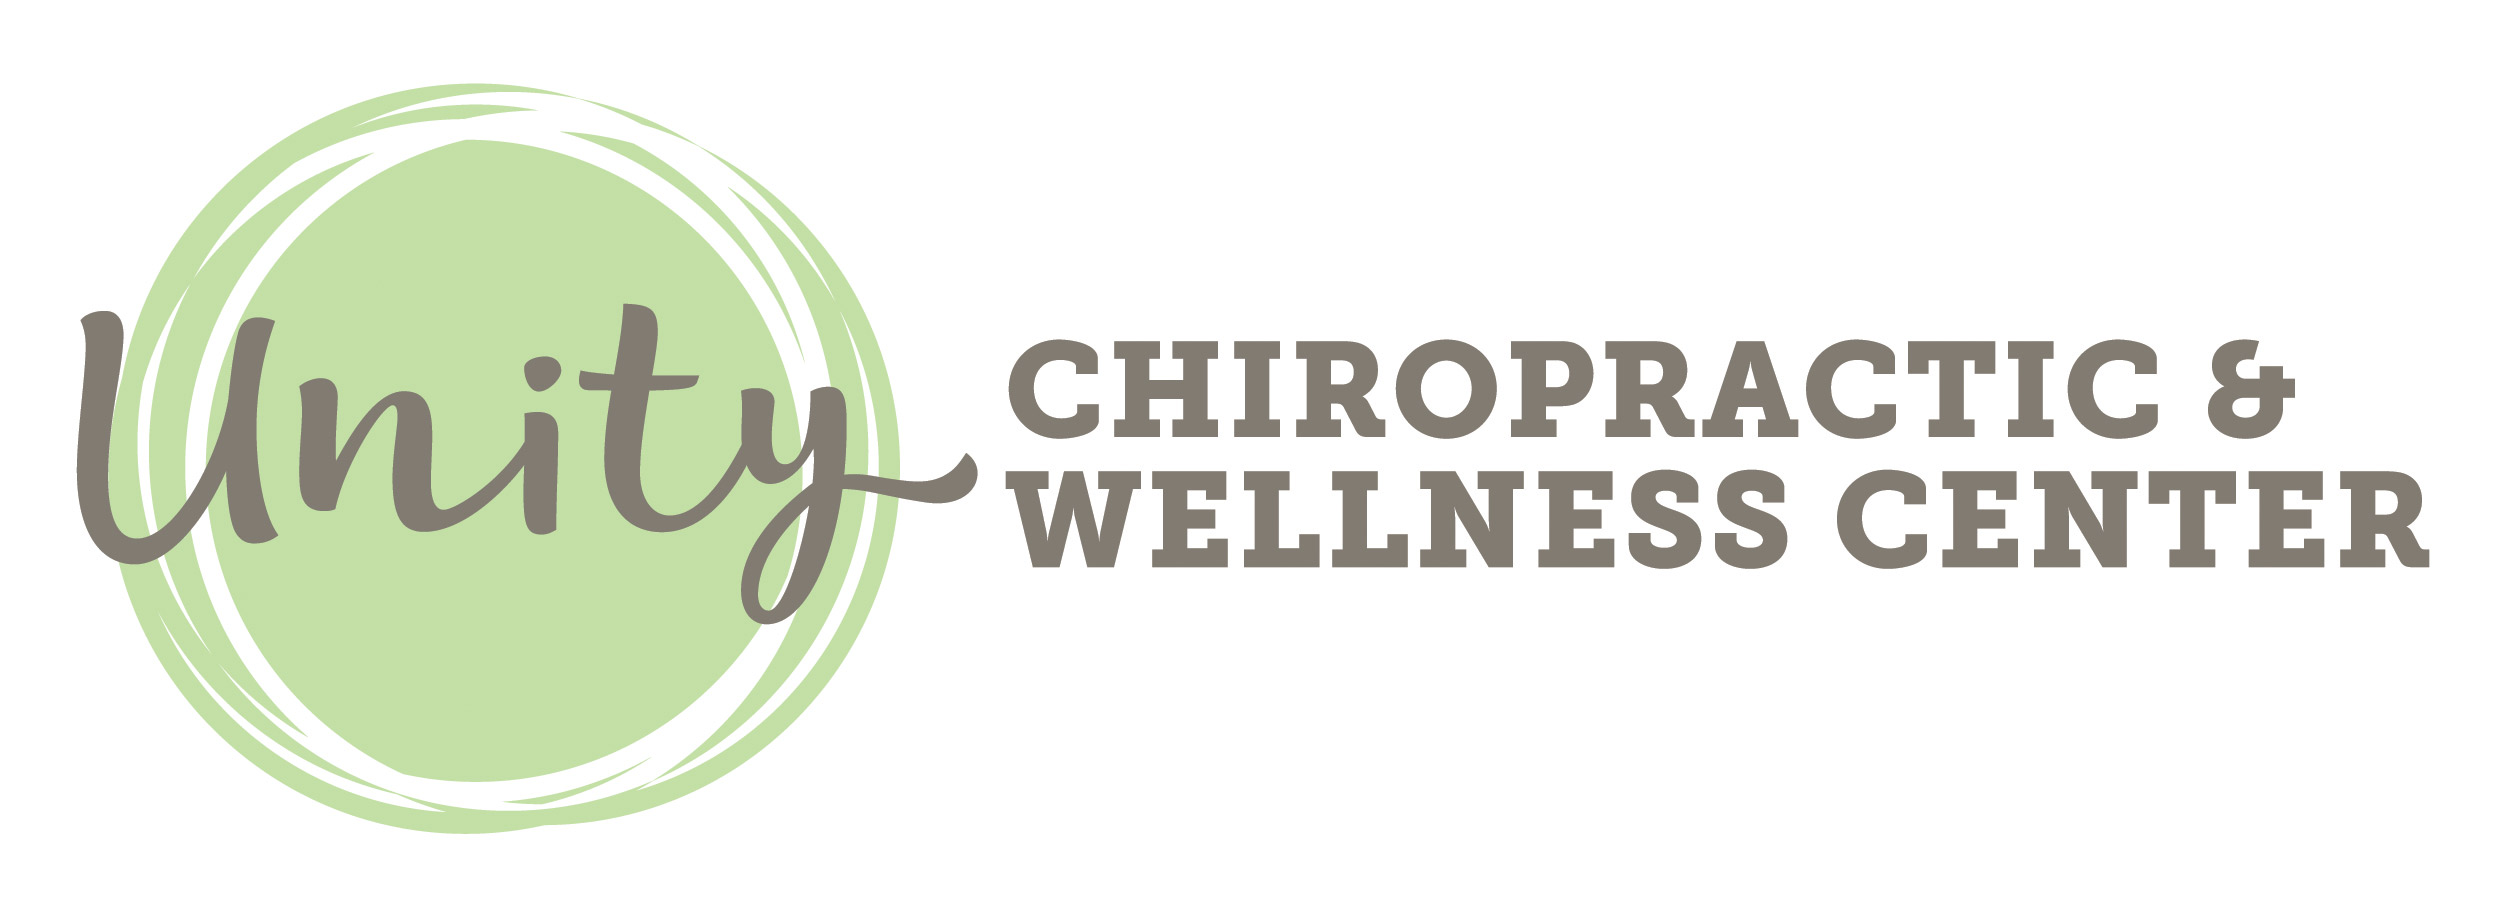 Unity Chiropractic and Wellness Center in Beaverton, OR